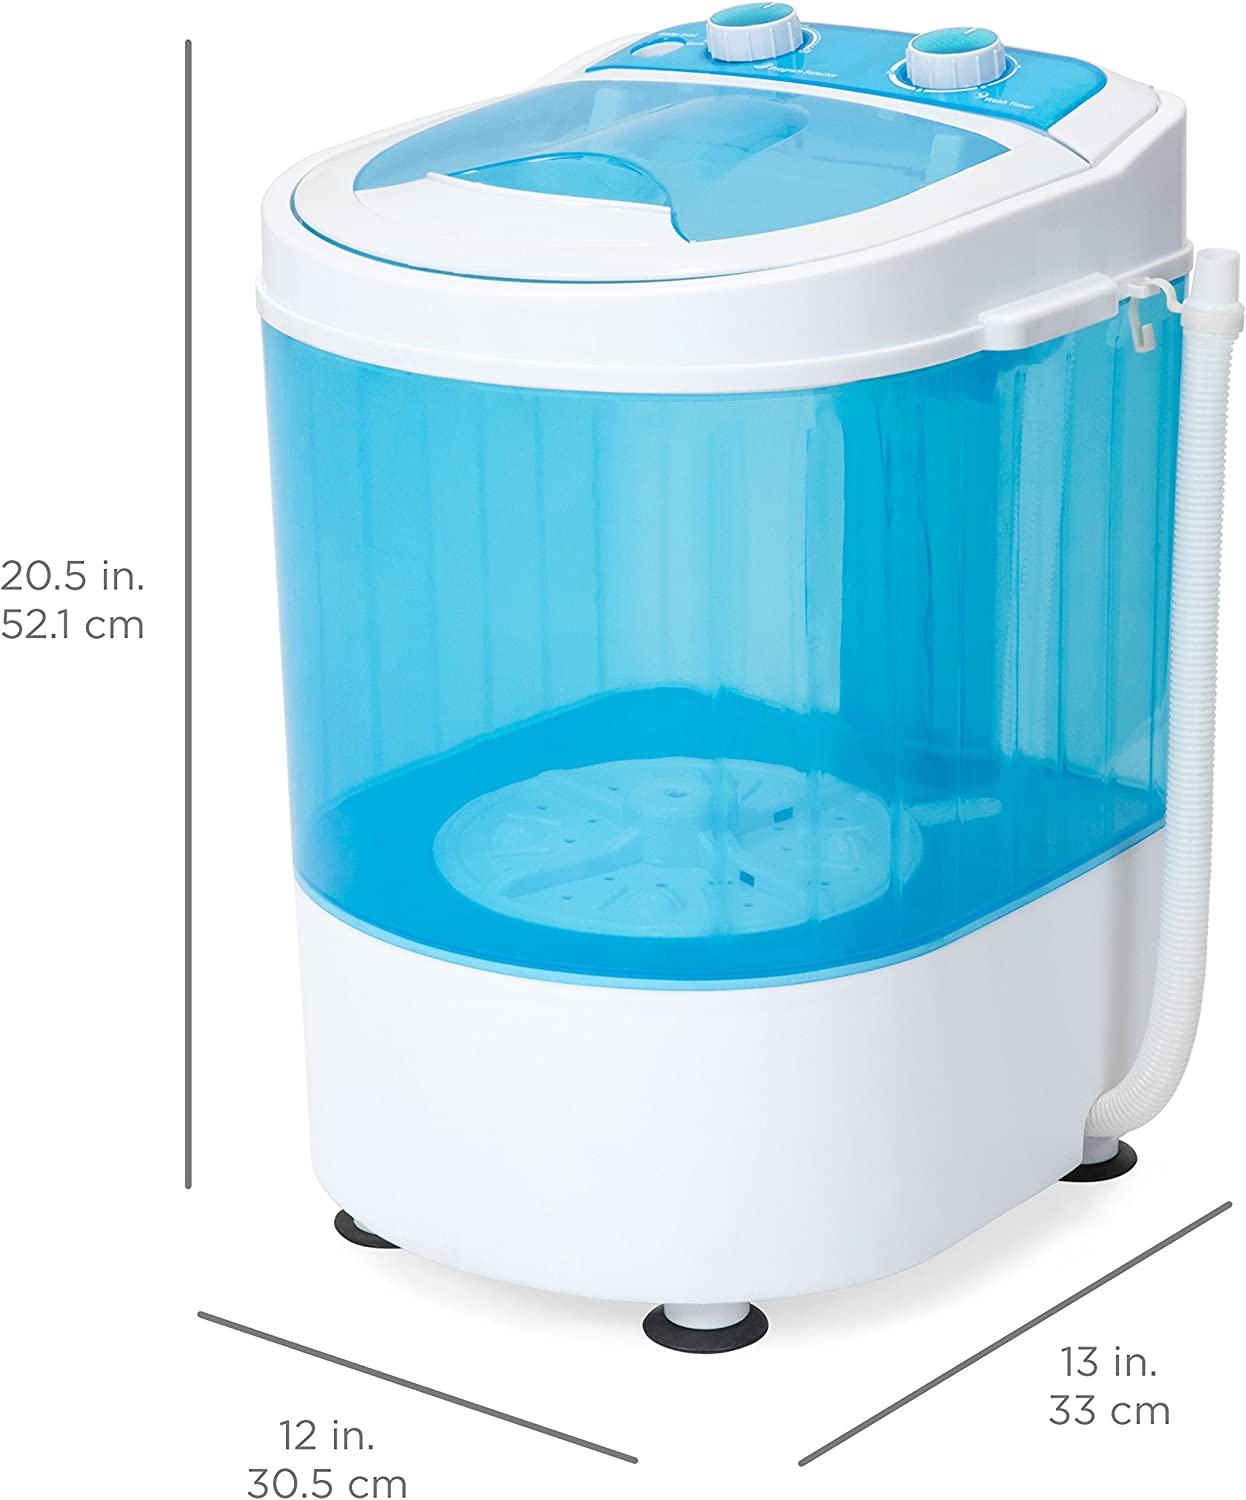 128oz Mini Washing Machine Compact Counter Top Washer with Spin Cycle Basket and Drain Hose Lightweight Travel Laundry Washer Camping Apartments Dorms RV Business Trip Clothes Blue